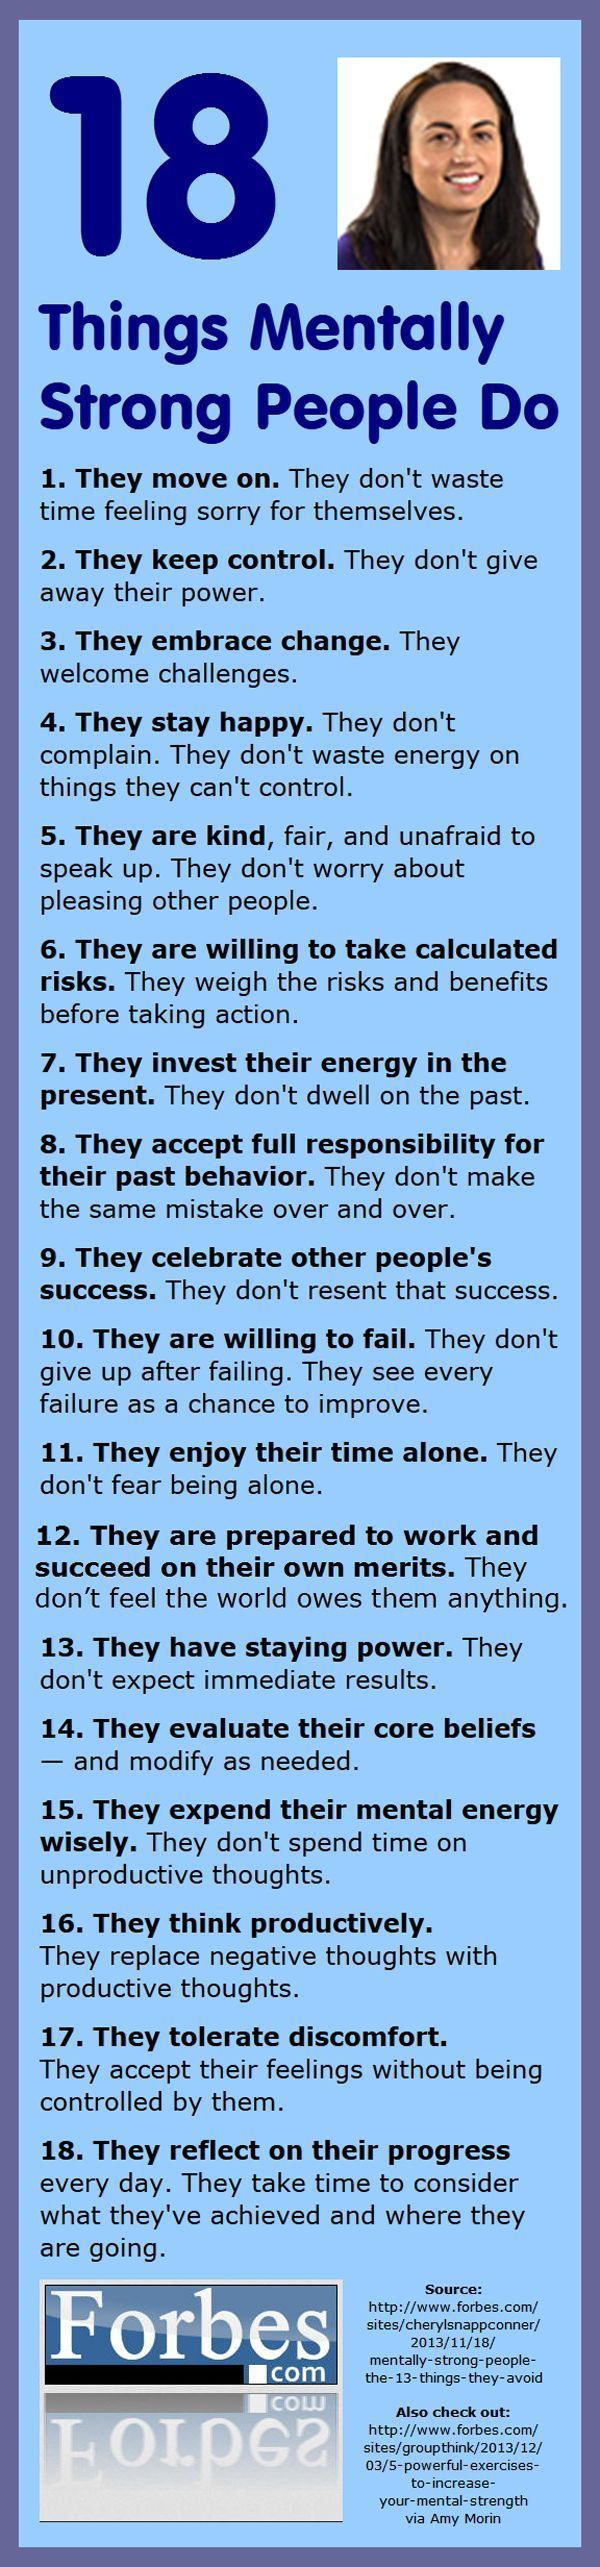 Mentally strong people move on and keep control. How about you?